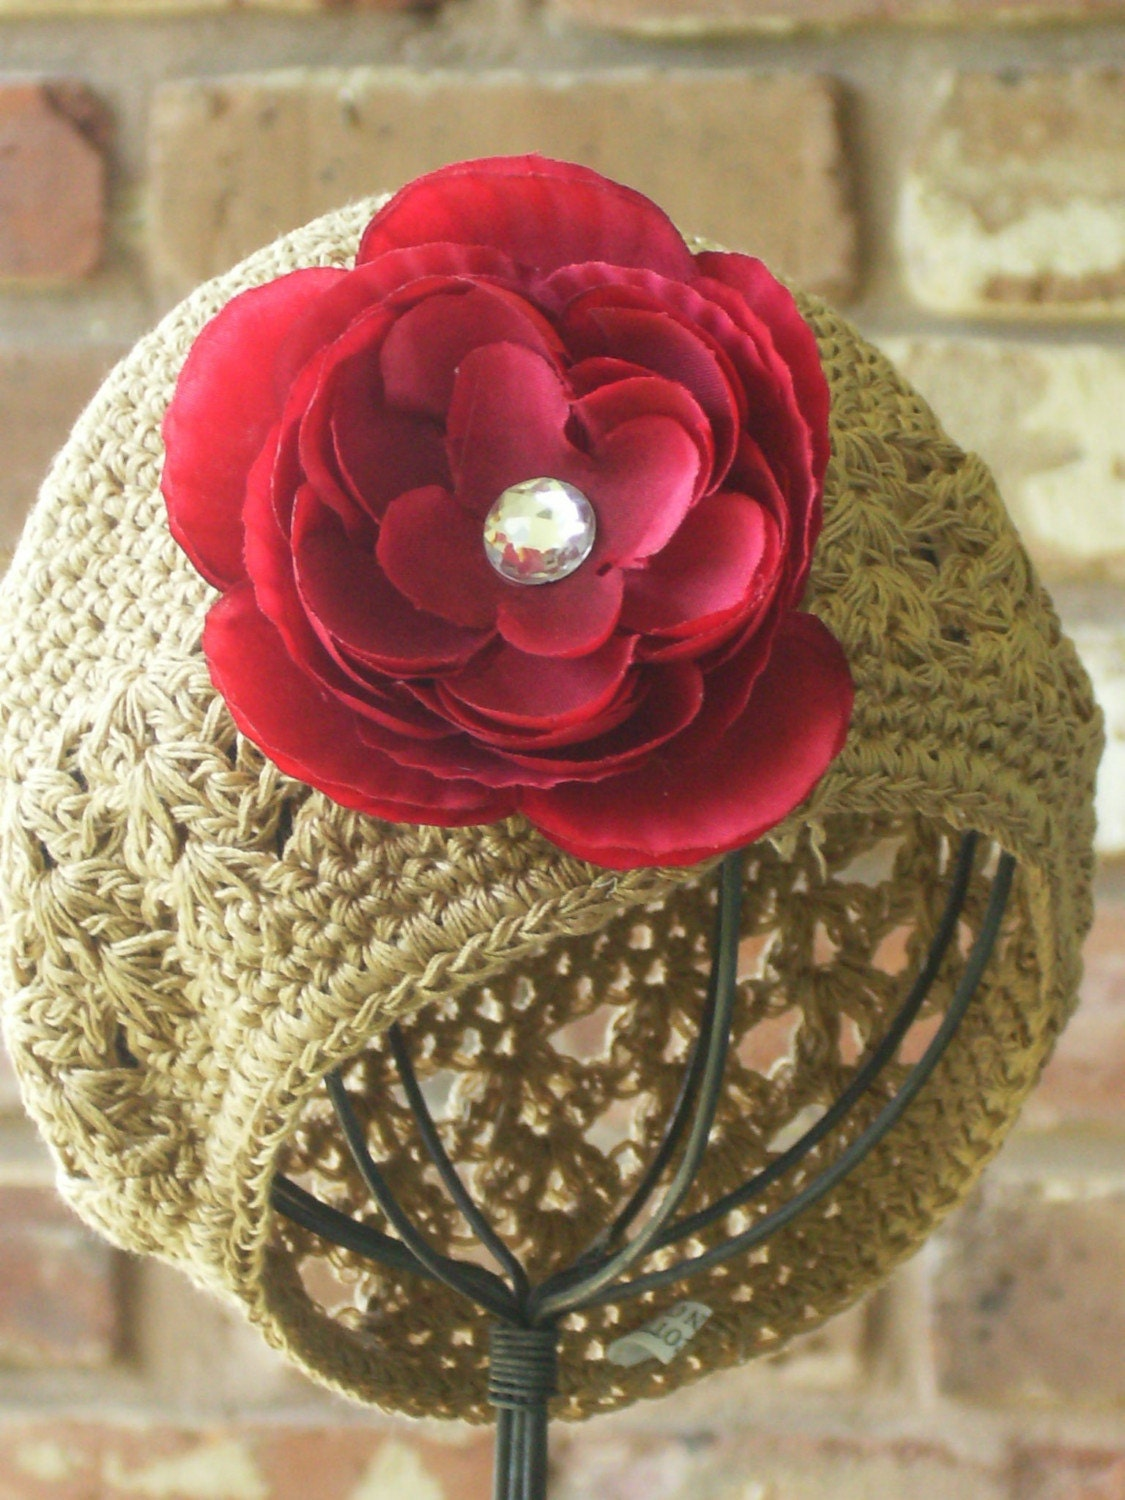 Boutique Newborn Baby Crochet Beanie Hat Cap with Jeweled Ranunculus Rose Flower Clip------Mocha Toffee-----Fits 0-12 Months------You Choose Flower